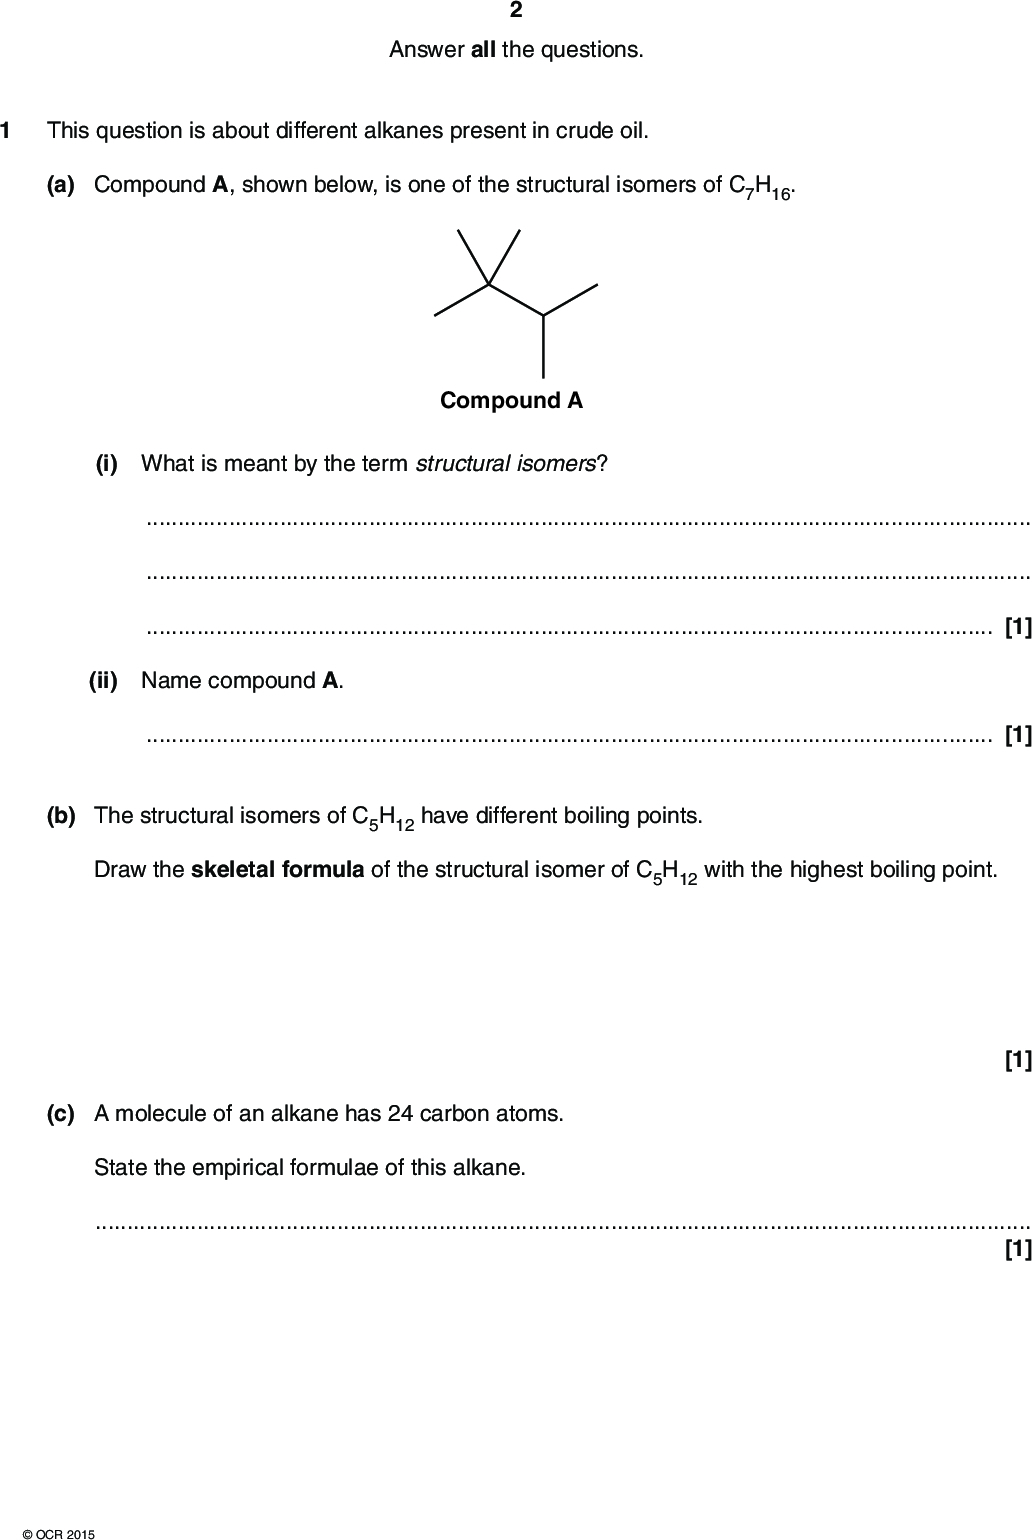 Answer all the questions. This question is about different alkanes present in crude oil. (a) Compound A, shown below, is one of the structural isomers of C7H16. (i) What is meant by the term structural isomers? Compound A[1] (ii) Name compound A.[1] (b) The structural isomers of C5H12 have different boiling points. Draw the skeletal formula of the structural isomer of C5H12 with the highest boiling point. (c) A molecule of an alkane has 24 carbon atoms. State the empirical formulae of this alkane.[1] [1]OCR 2015<br />  (d) Alkanes are used as fuels. (i) Construct an equation for the complete combustion of octane C8H18.[1] (ii) Combustion of 36.48 g of octane produced 2.50 mol of carbon dioxide. Show that this combustion was incomplete. [2] (e) Alkanes in crude oil can be used to manufacture ethene. Two stages are required. (i) Name the two stages.[1] (ii) Write an equation for the preparation of ethene from an alkane.[1] [Total: 9]OCR 2015 Turn over<br />